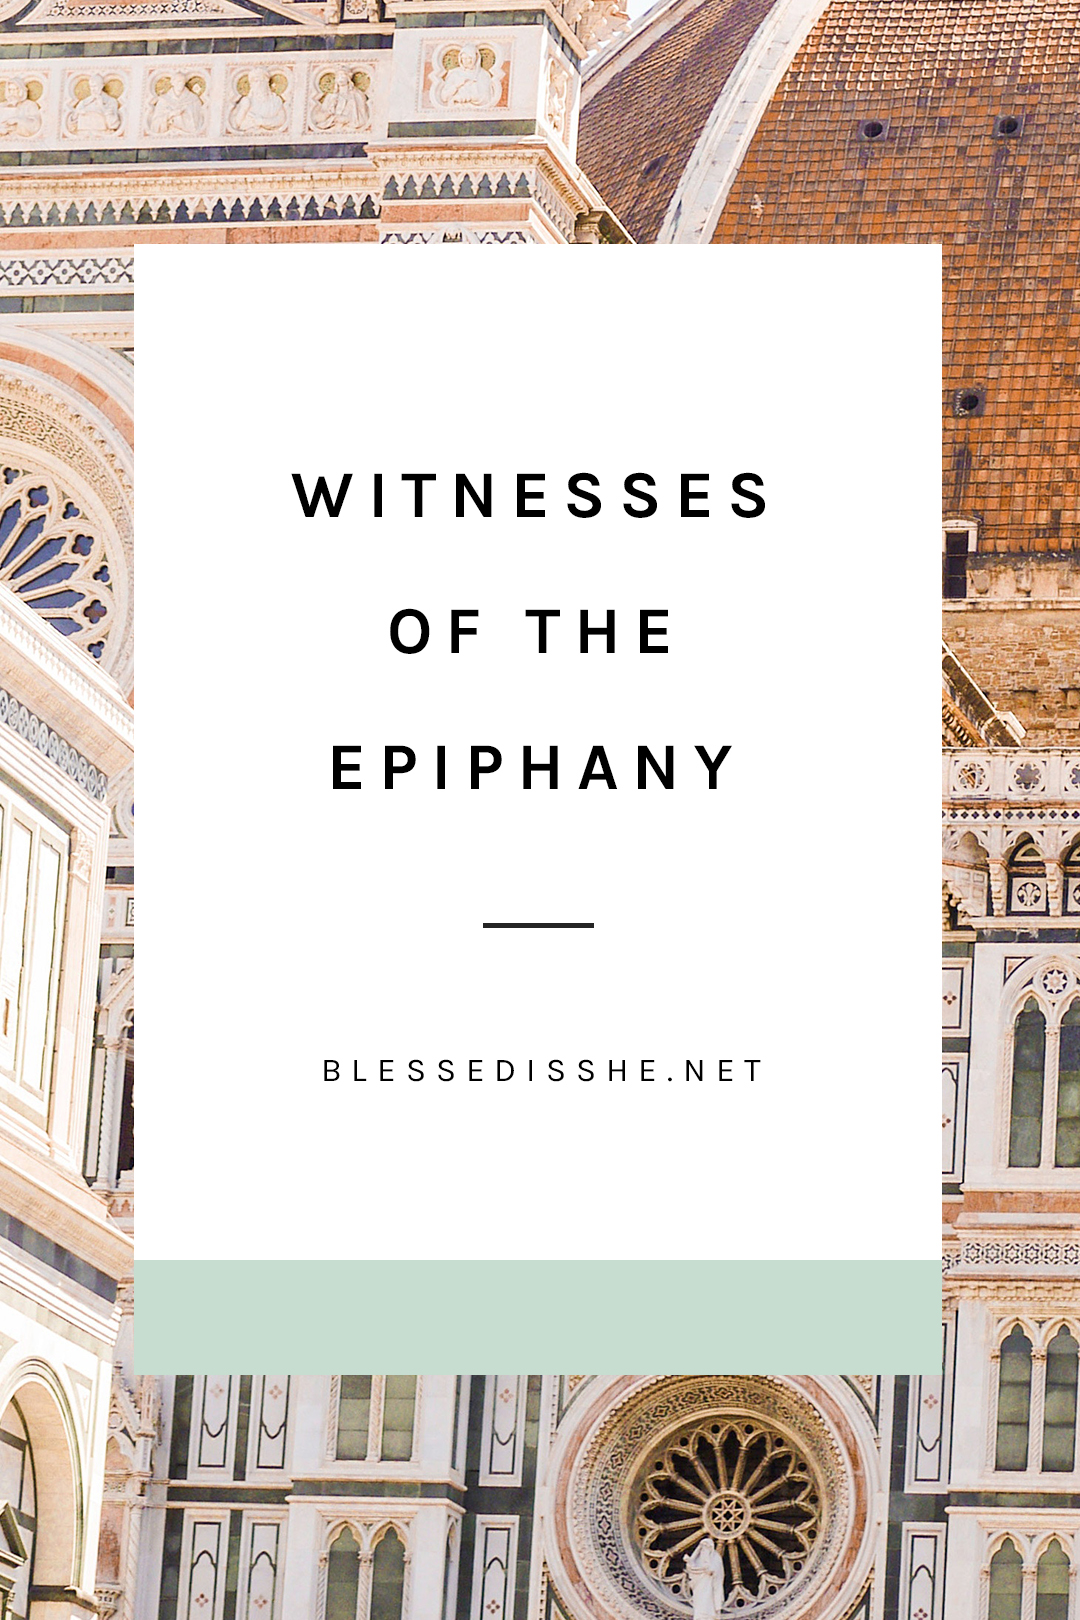 reflection for the feast of the epiphany